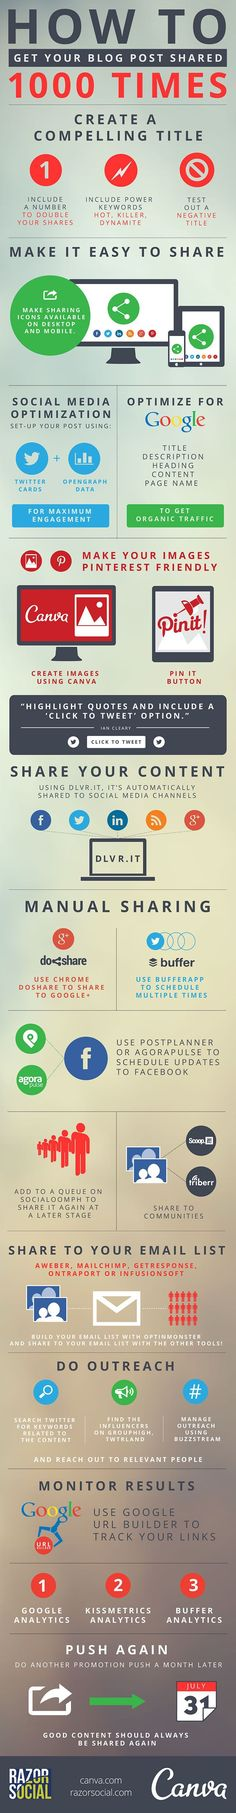 Great Tips to Get Your Blog Posts Shared MORE! Pinnable images are a winner for me. My most-shared posts are always due to thousands of pins! Check out the other tips on this #infographic. #bloggingtips